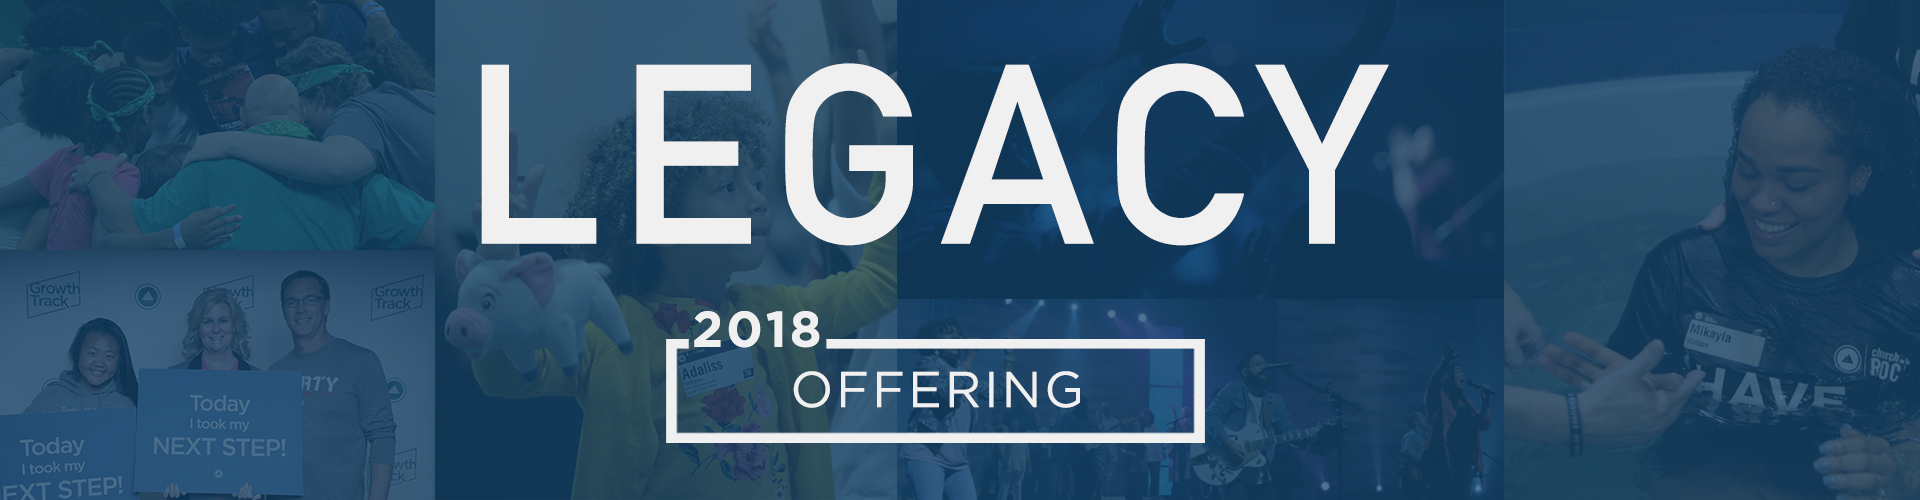 Legacy Offering 2018